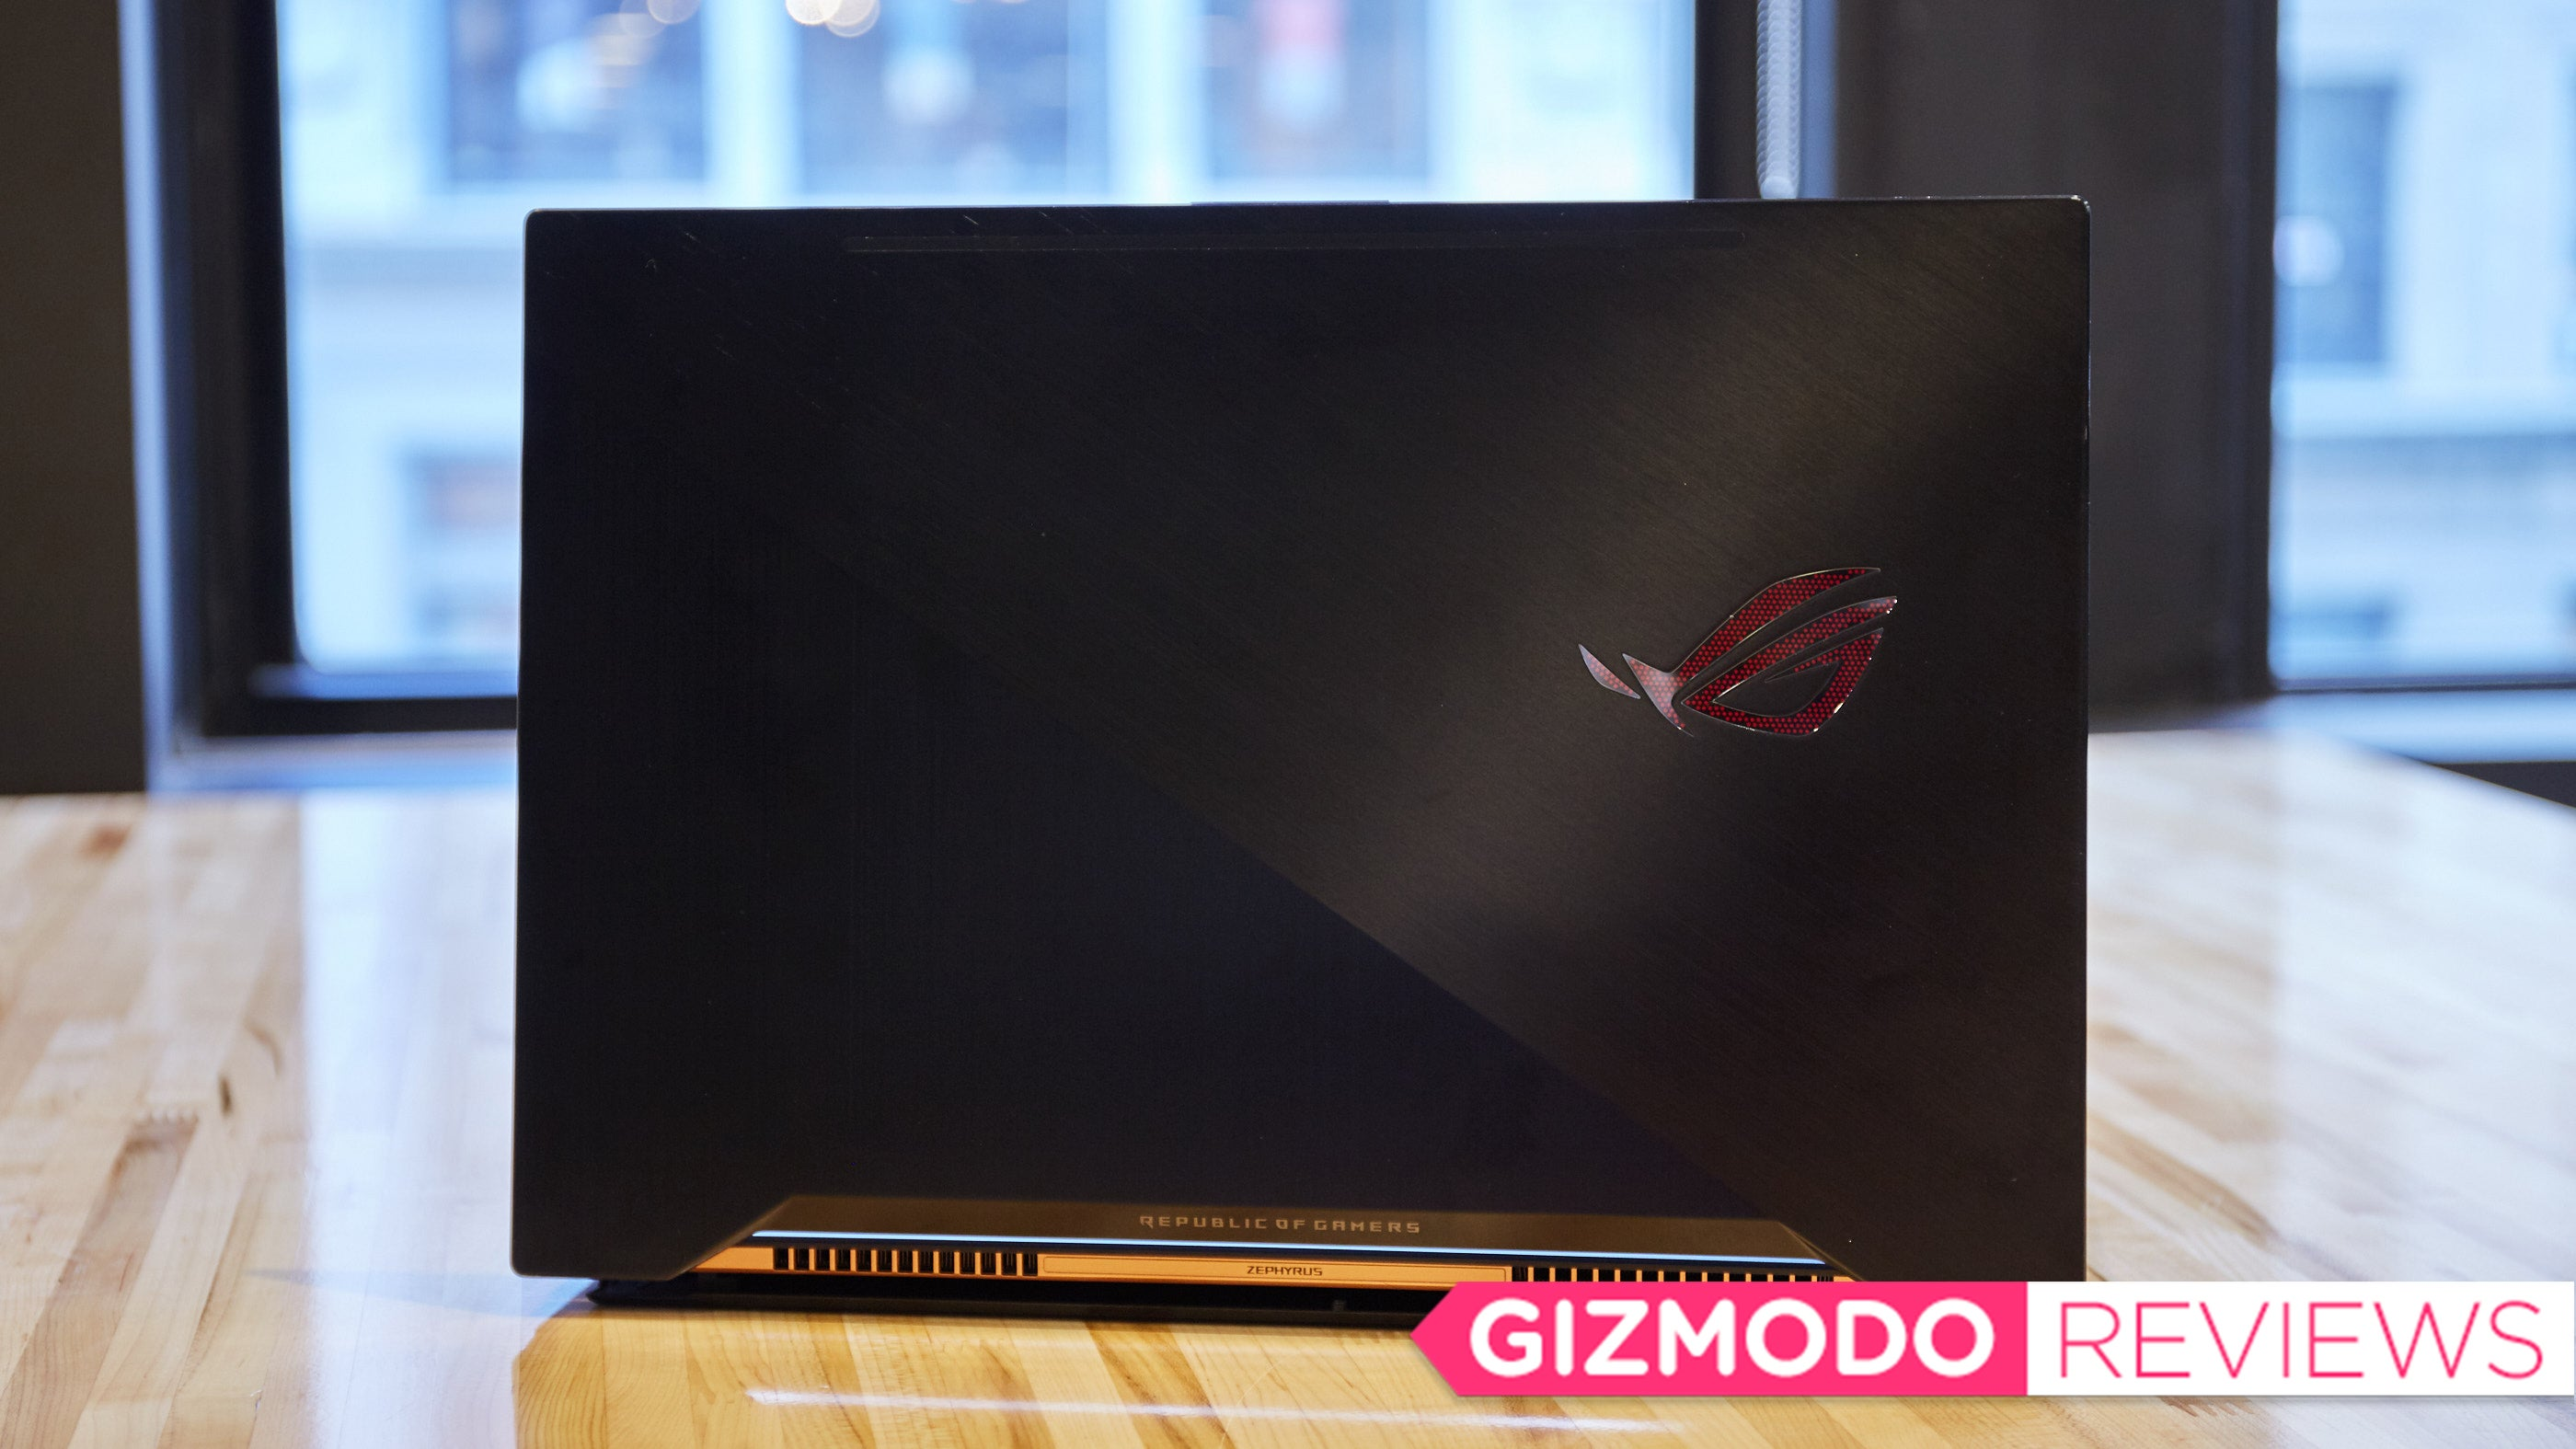 Asus Zephyrus Review: Has The Age Of Powerful And Convenient Gaming Laptops Finally Arrived?